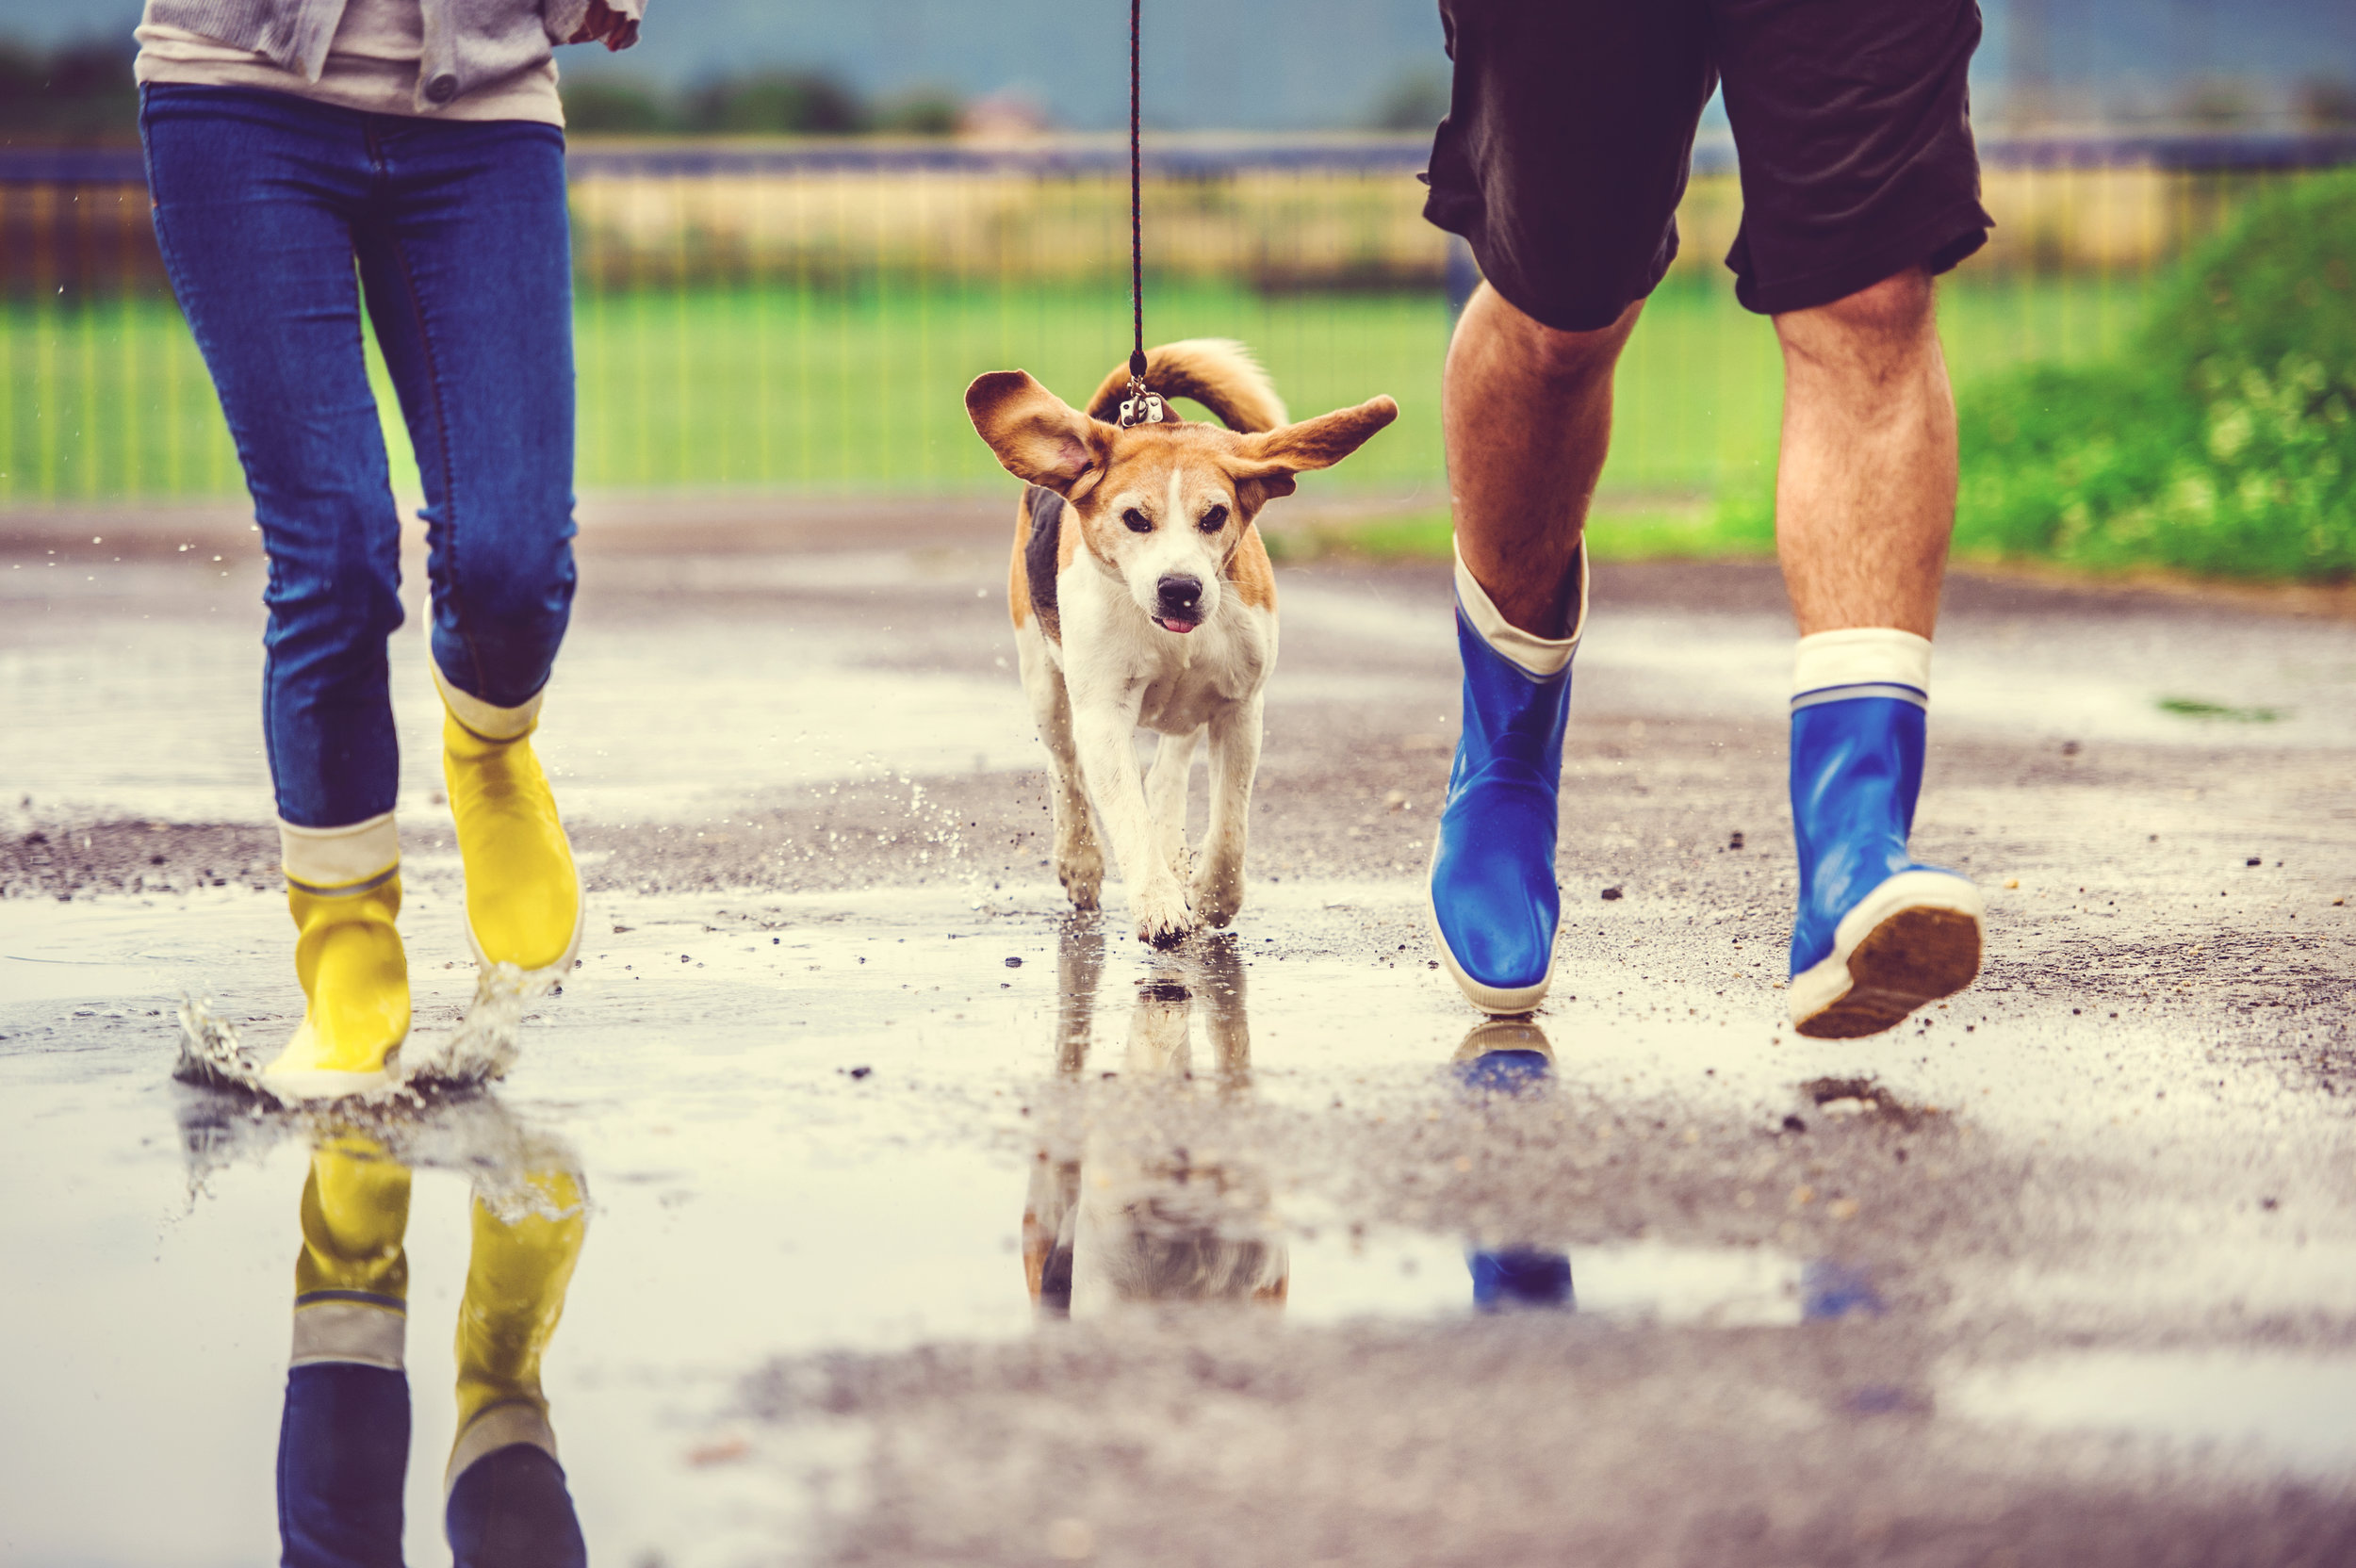 graphicstock-young-couple-walk-dog-in-rain-details-of-wellies-splashing-in-puddles_B0Z7qYv3--.jpg